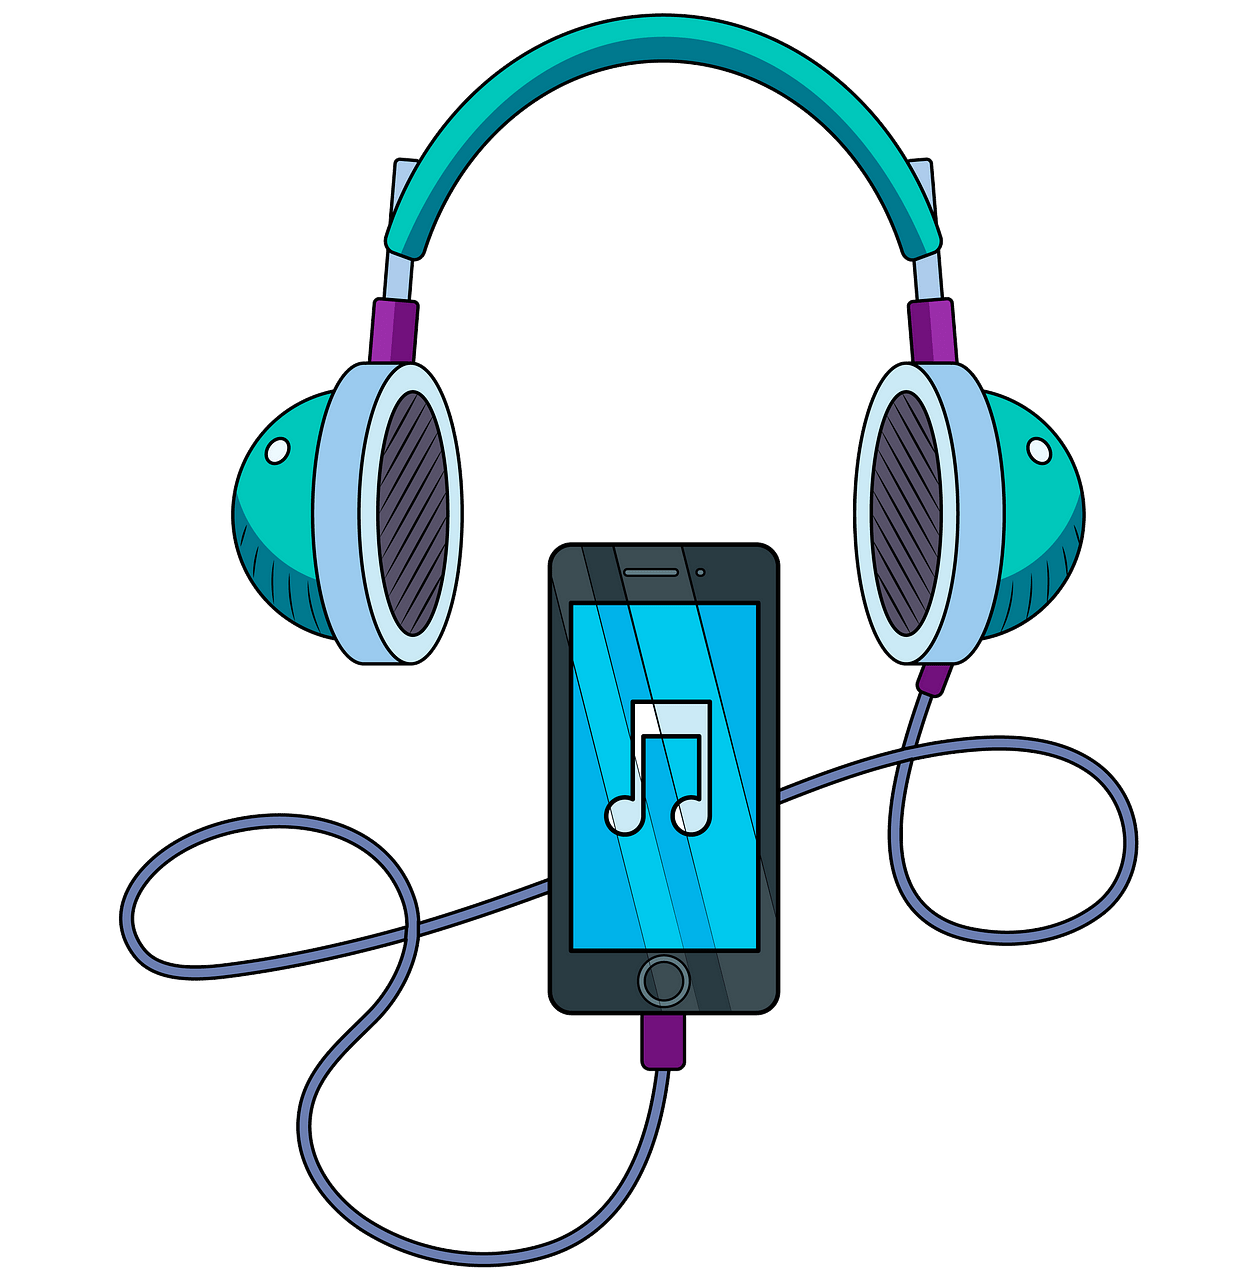 And headphones free download. Music clipart music player